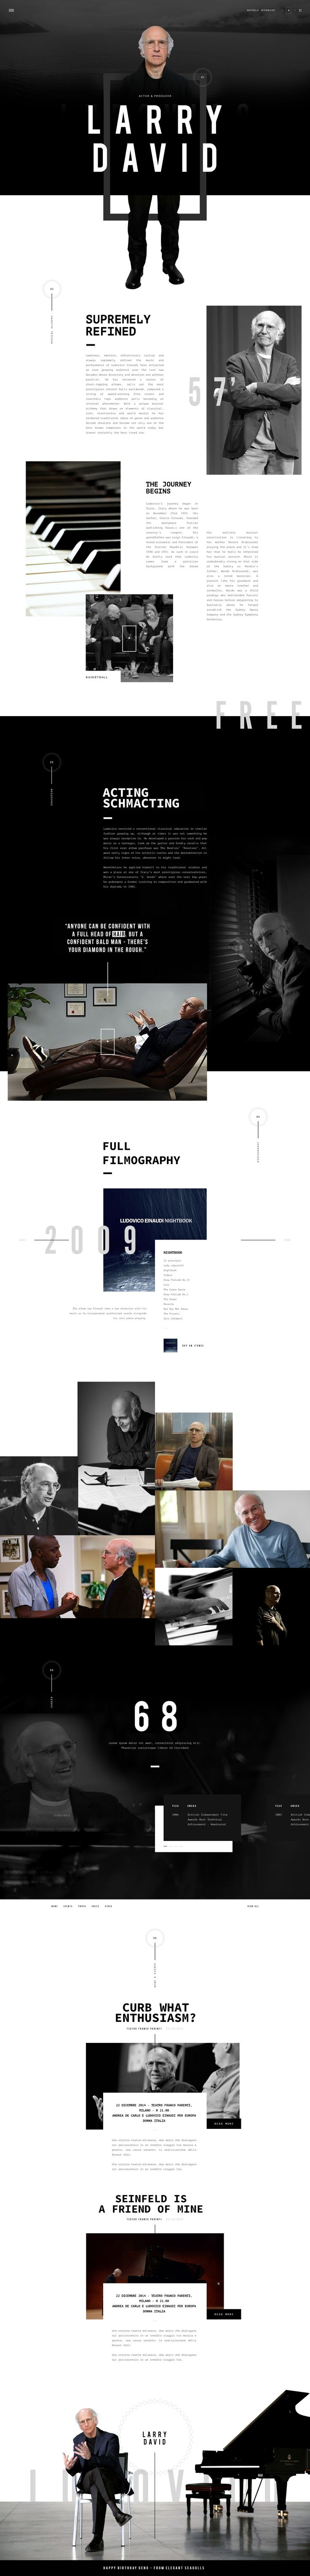 Larry David – BW biopic webpage design and Ui concept by Elegant Seagulls